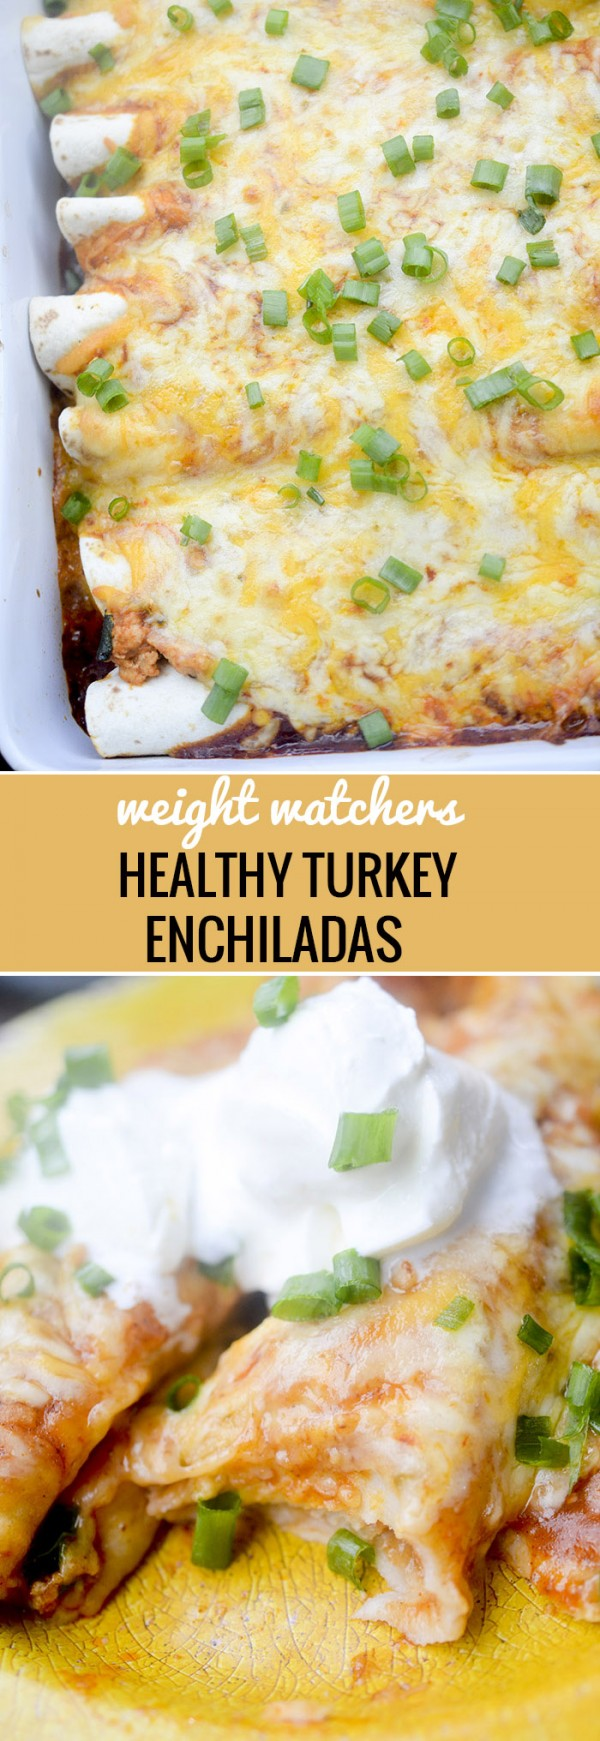 Get the recipe Healthy Turkey Enchiladas @recipes_to_go